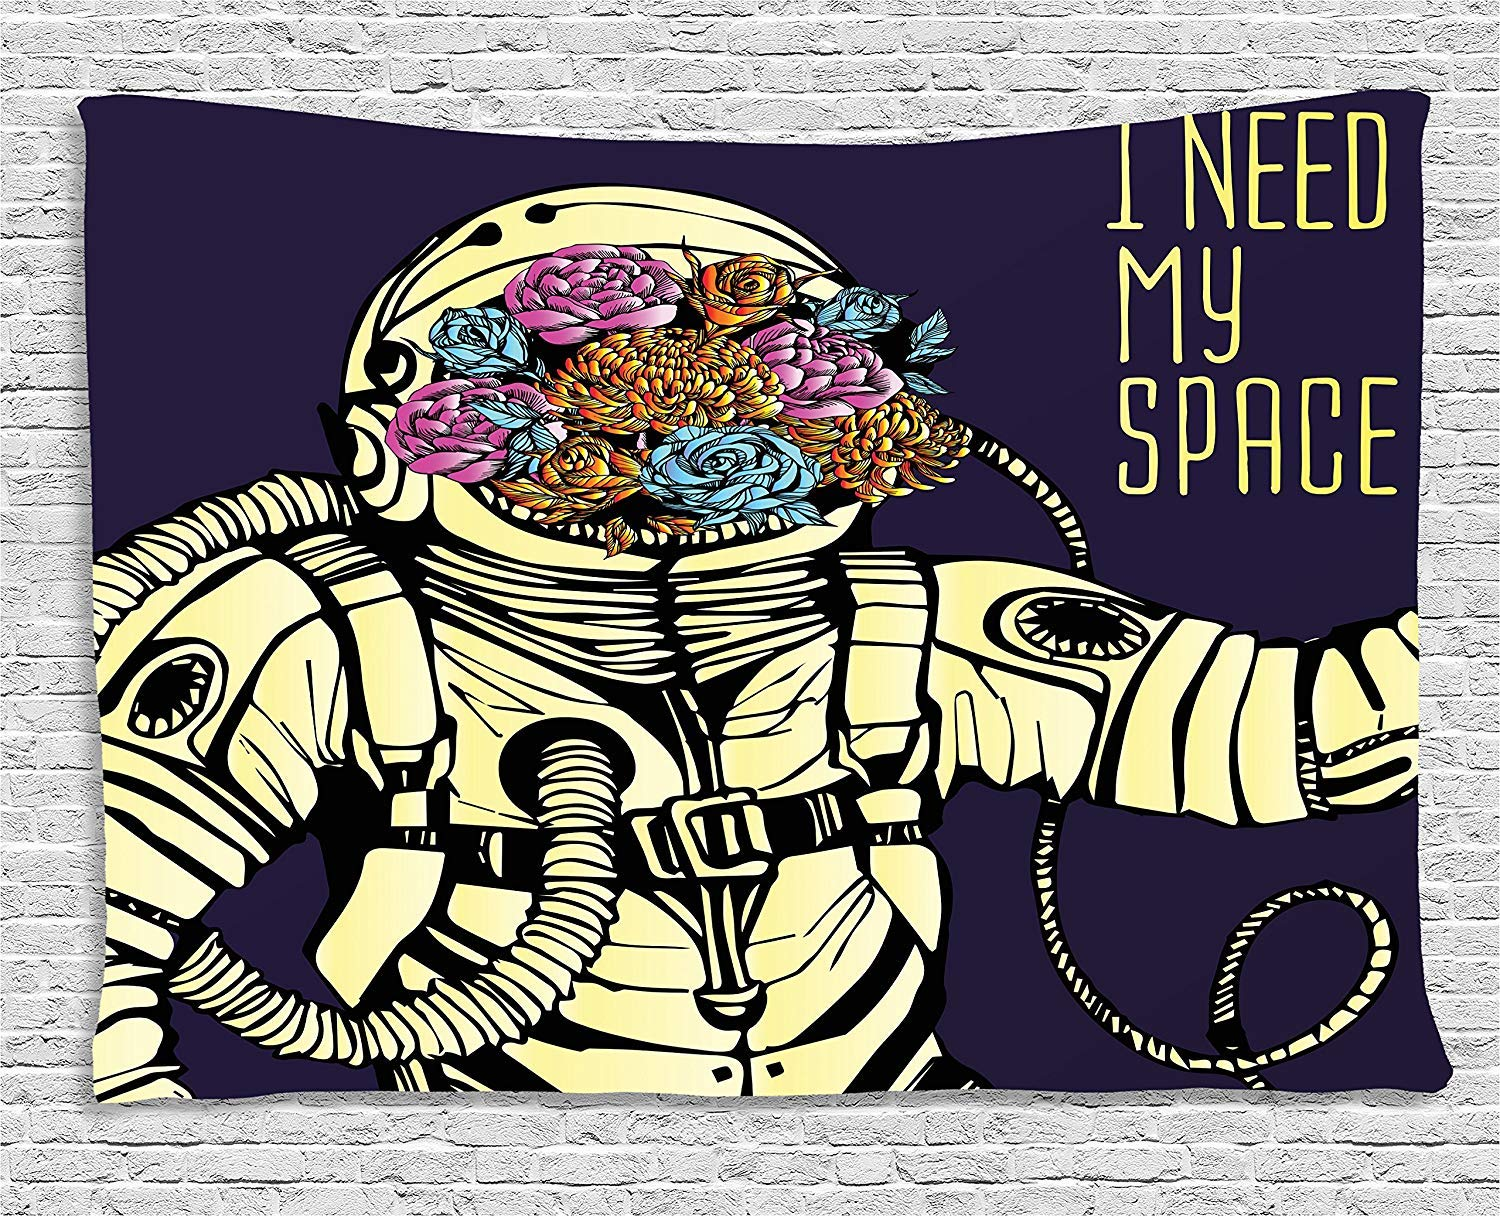 THndjsh Outer Space Decor Tapestry, Floral Cosmonaut Man in Spacesuit Solar System Alien Comet Cartoon Image, Wall Hanging for Bedroom Living Room Dorm, 80WX60L Inches, Yellow Blue